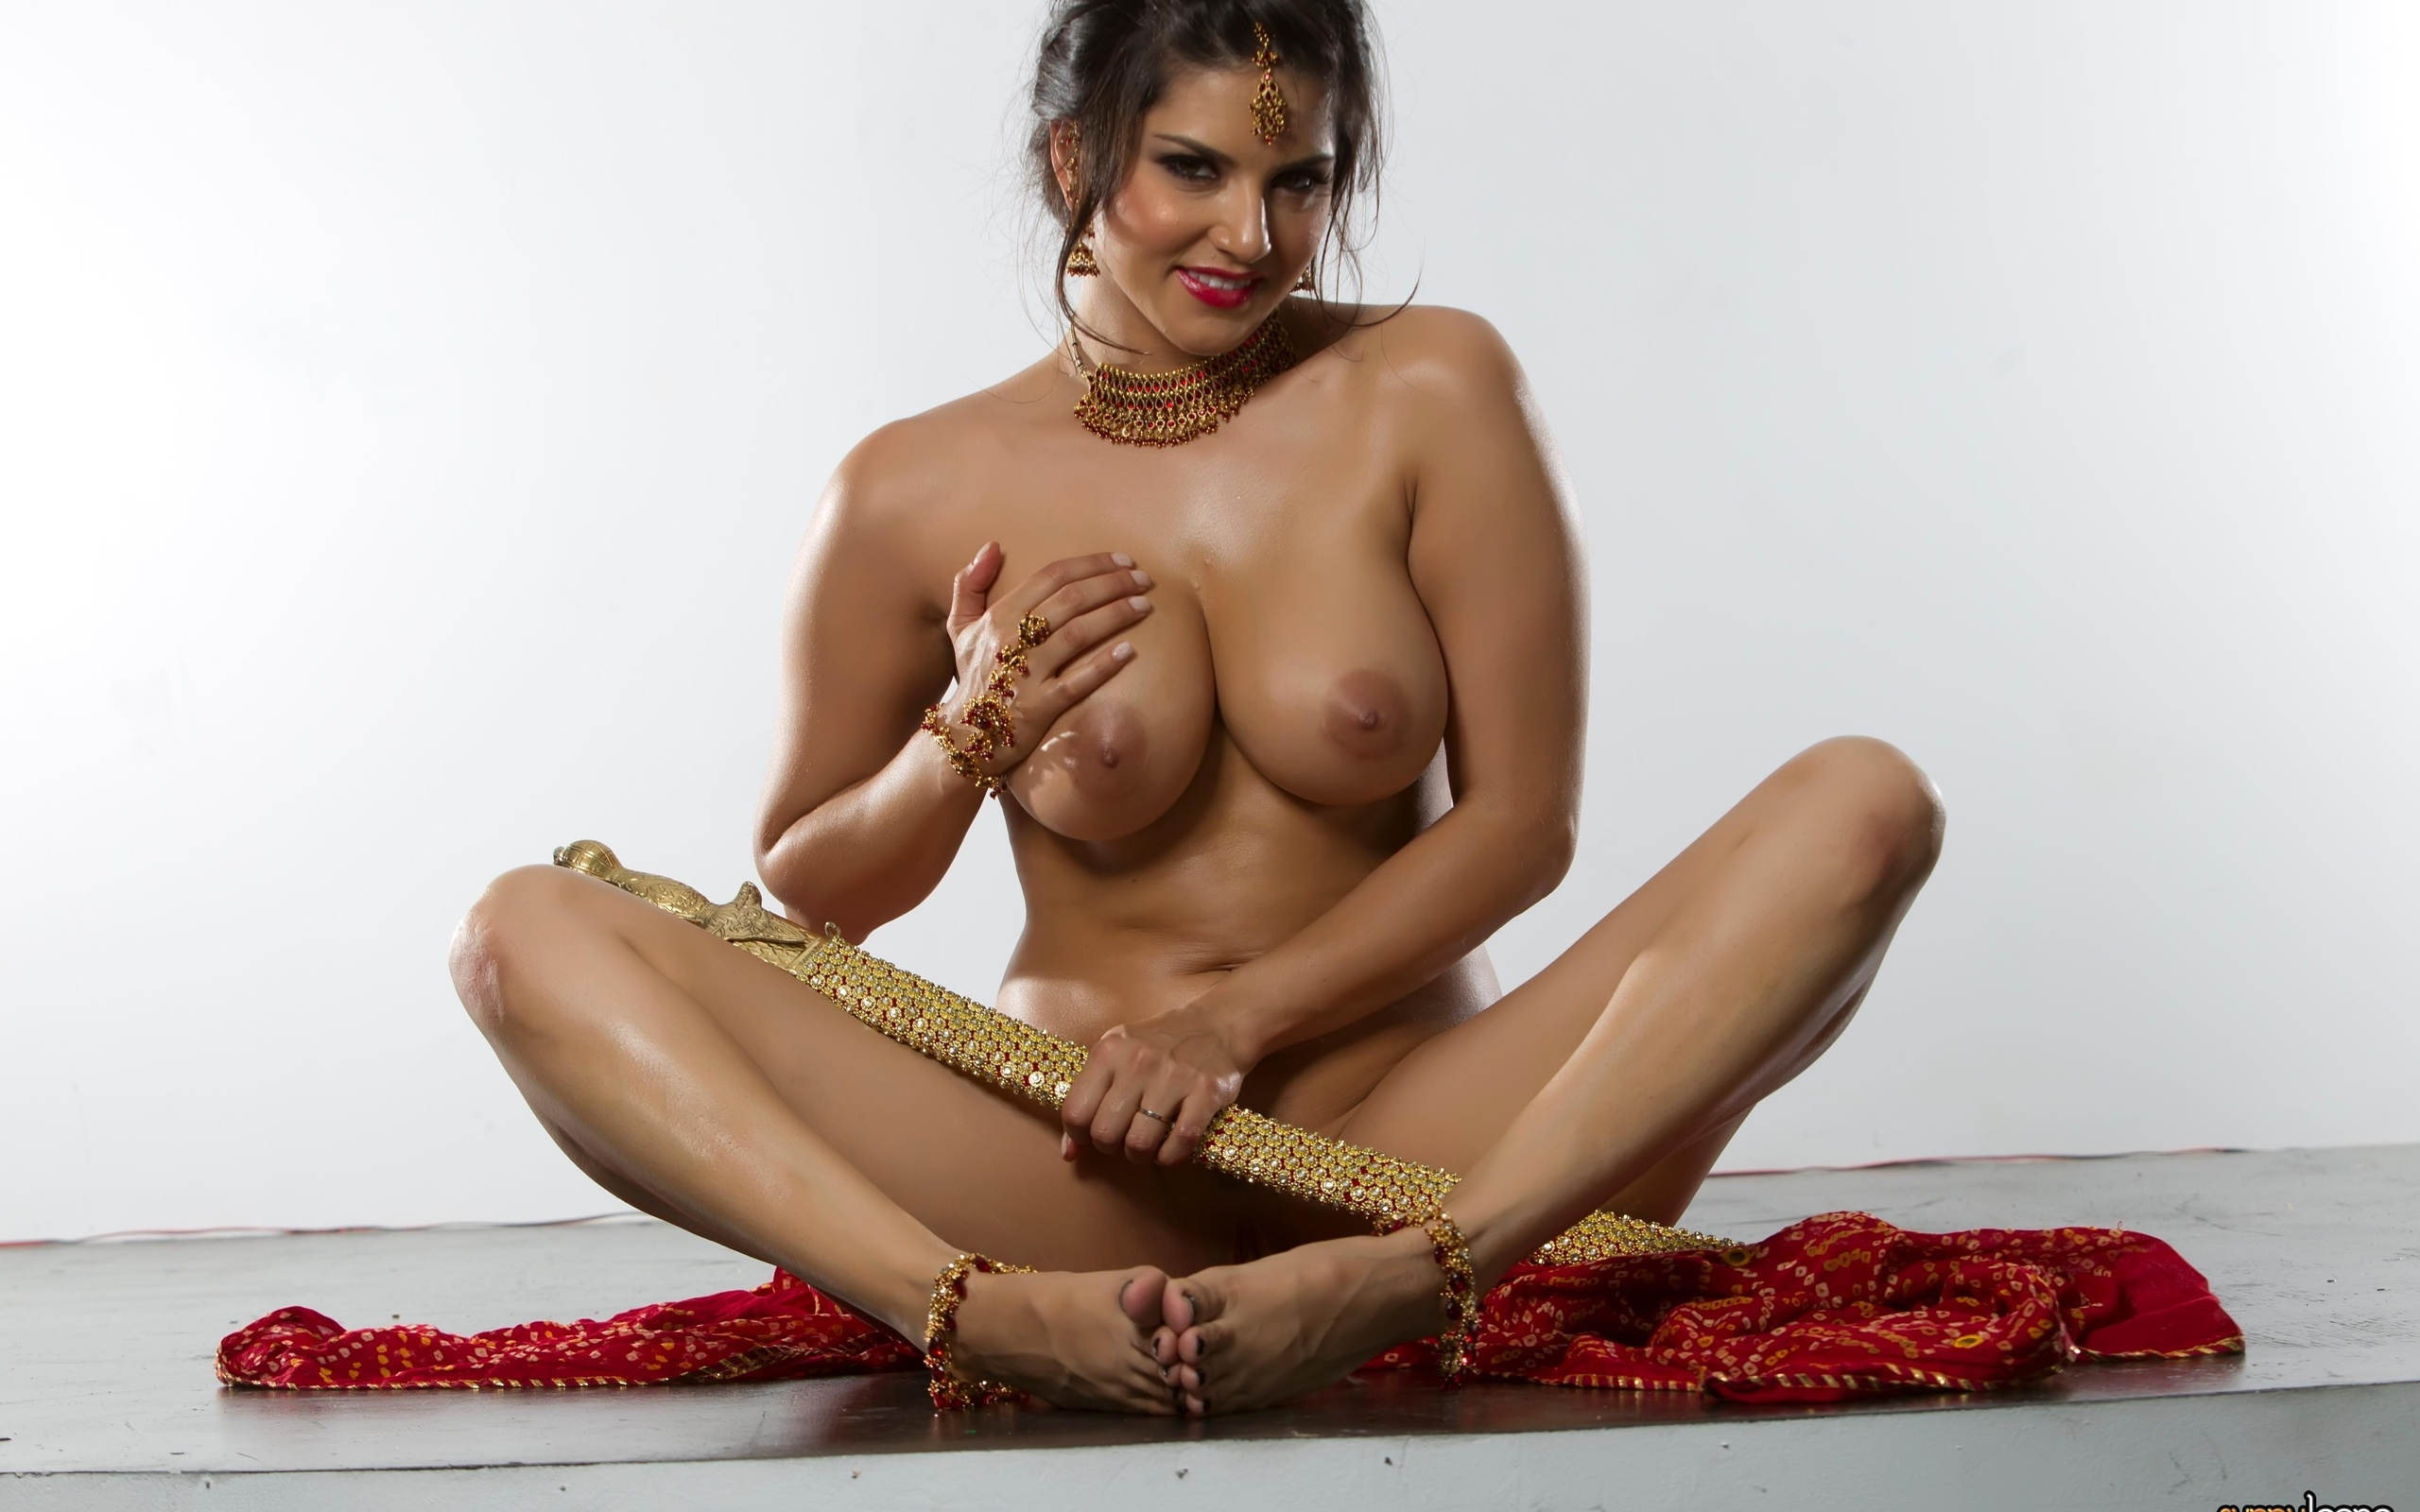 Nacked 3d hd wallpapers of sexy indian  adult pic